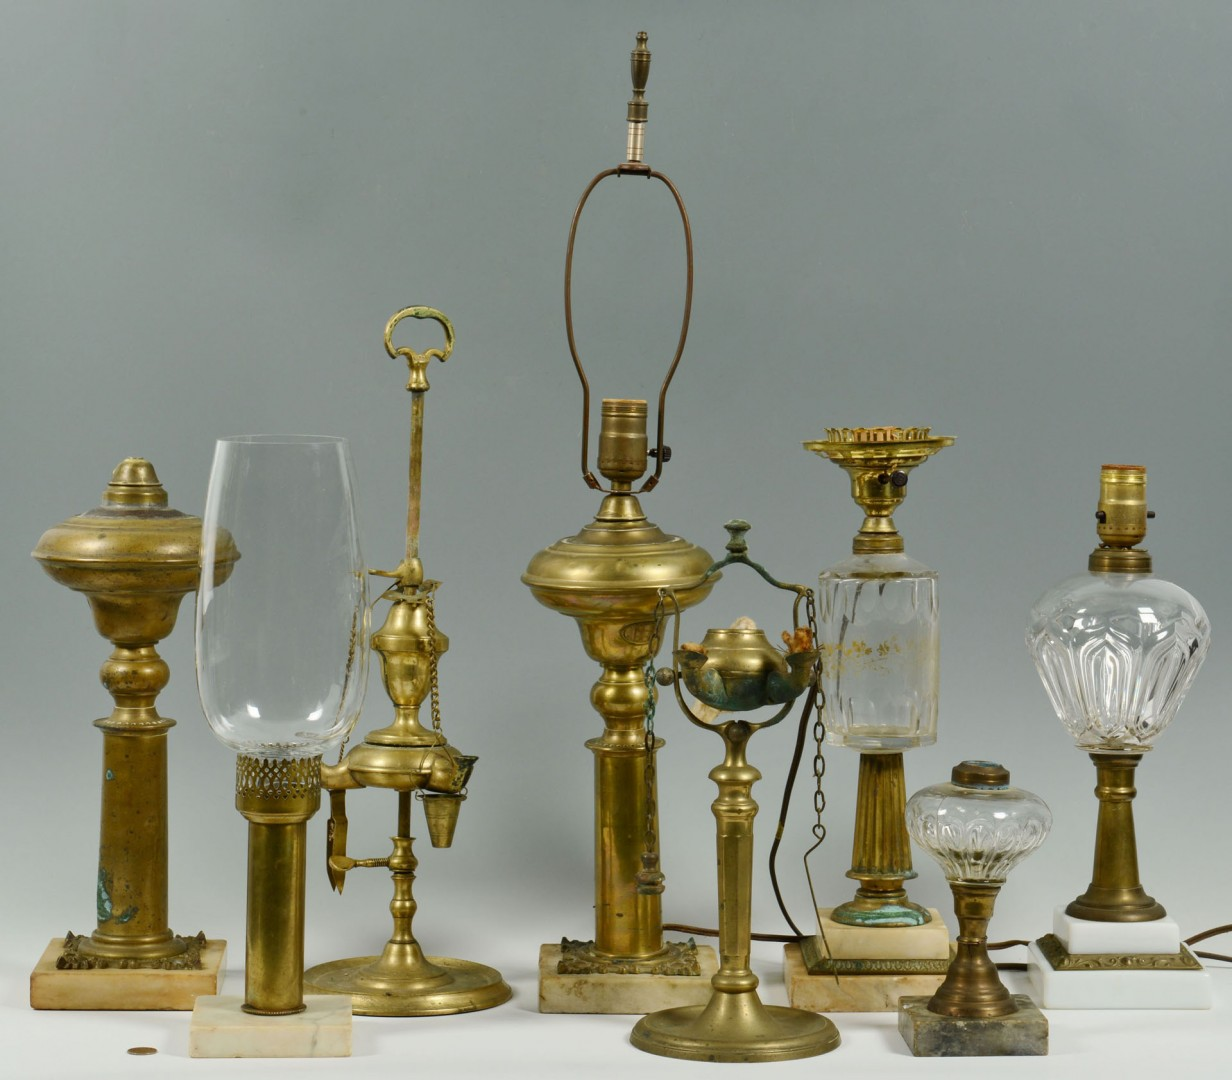 Lot 285: 8 Glass & Brass Oil Lamps, includ. Lucerne